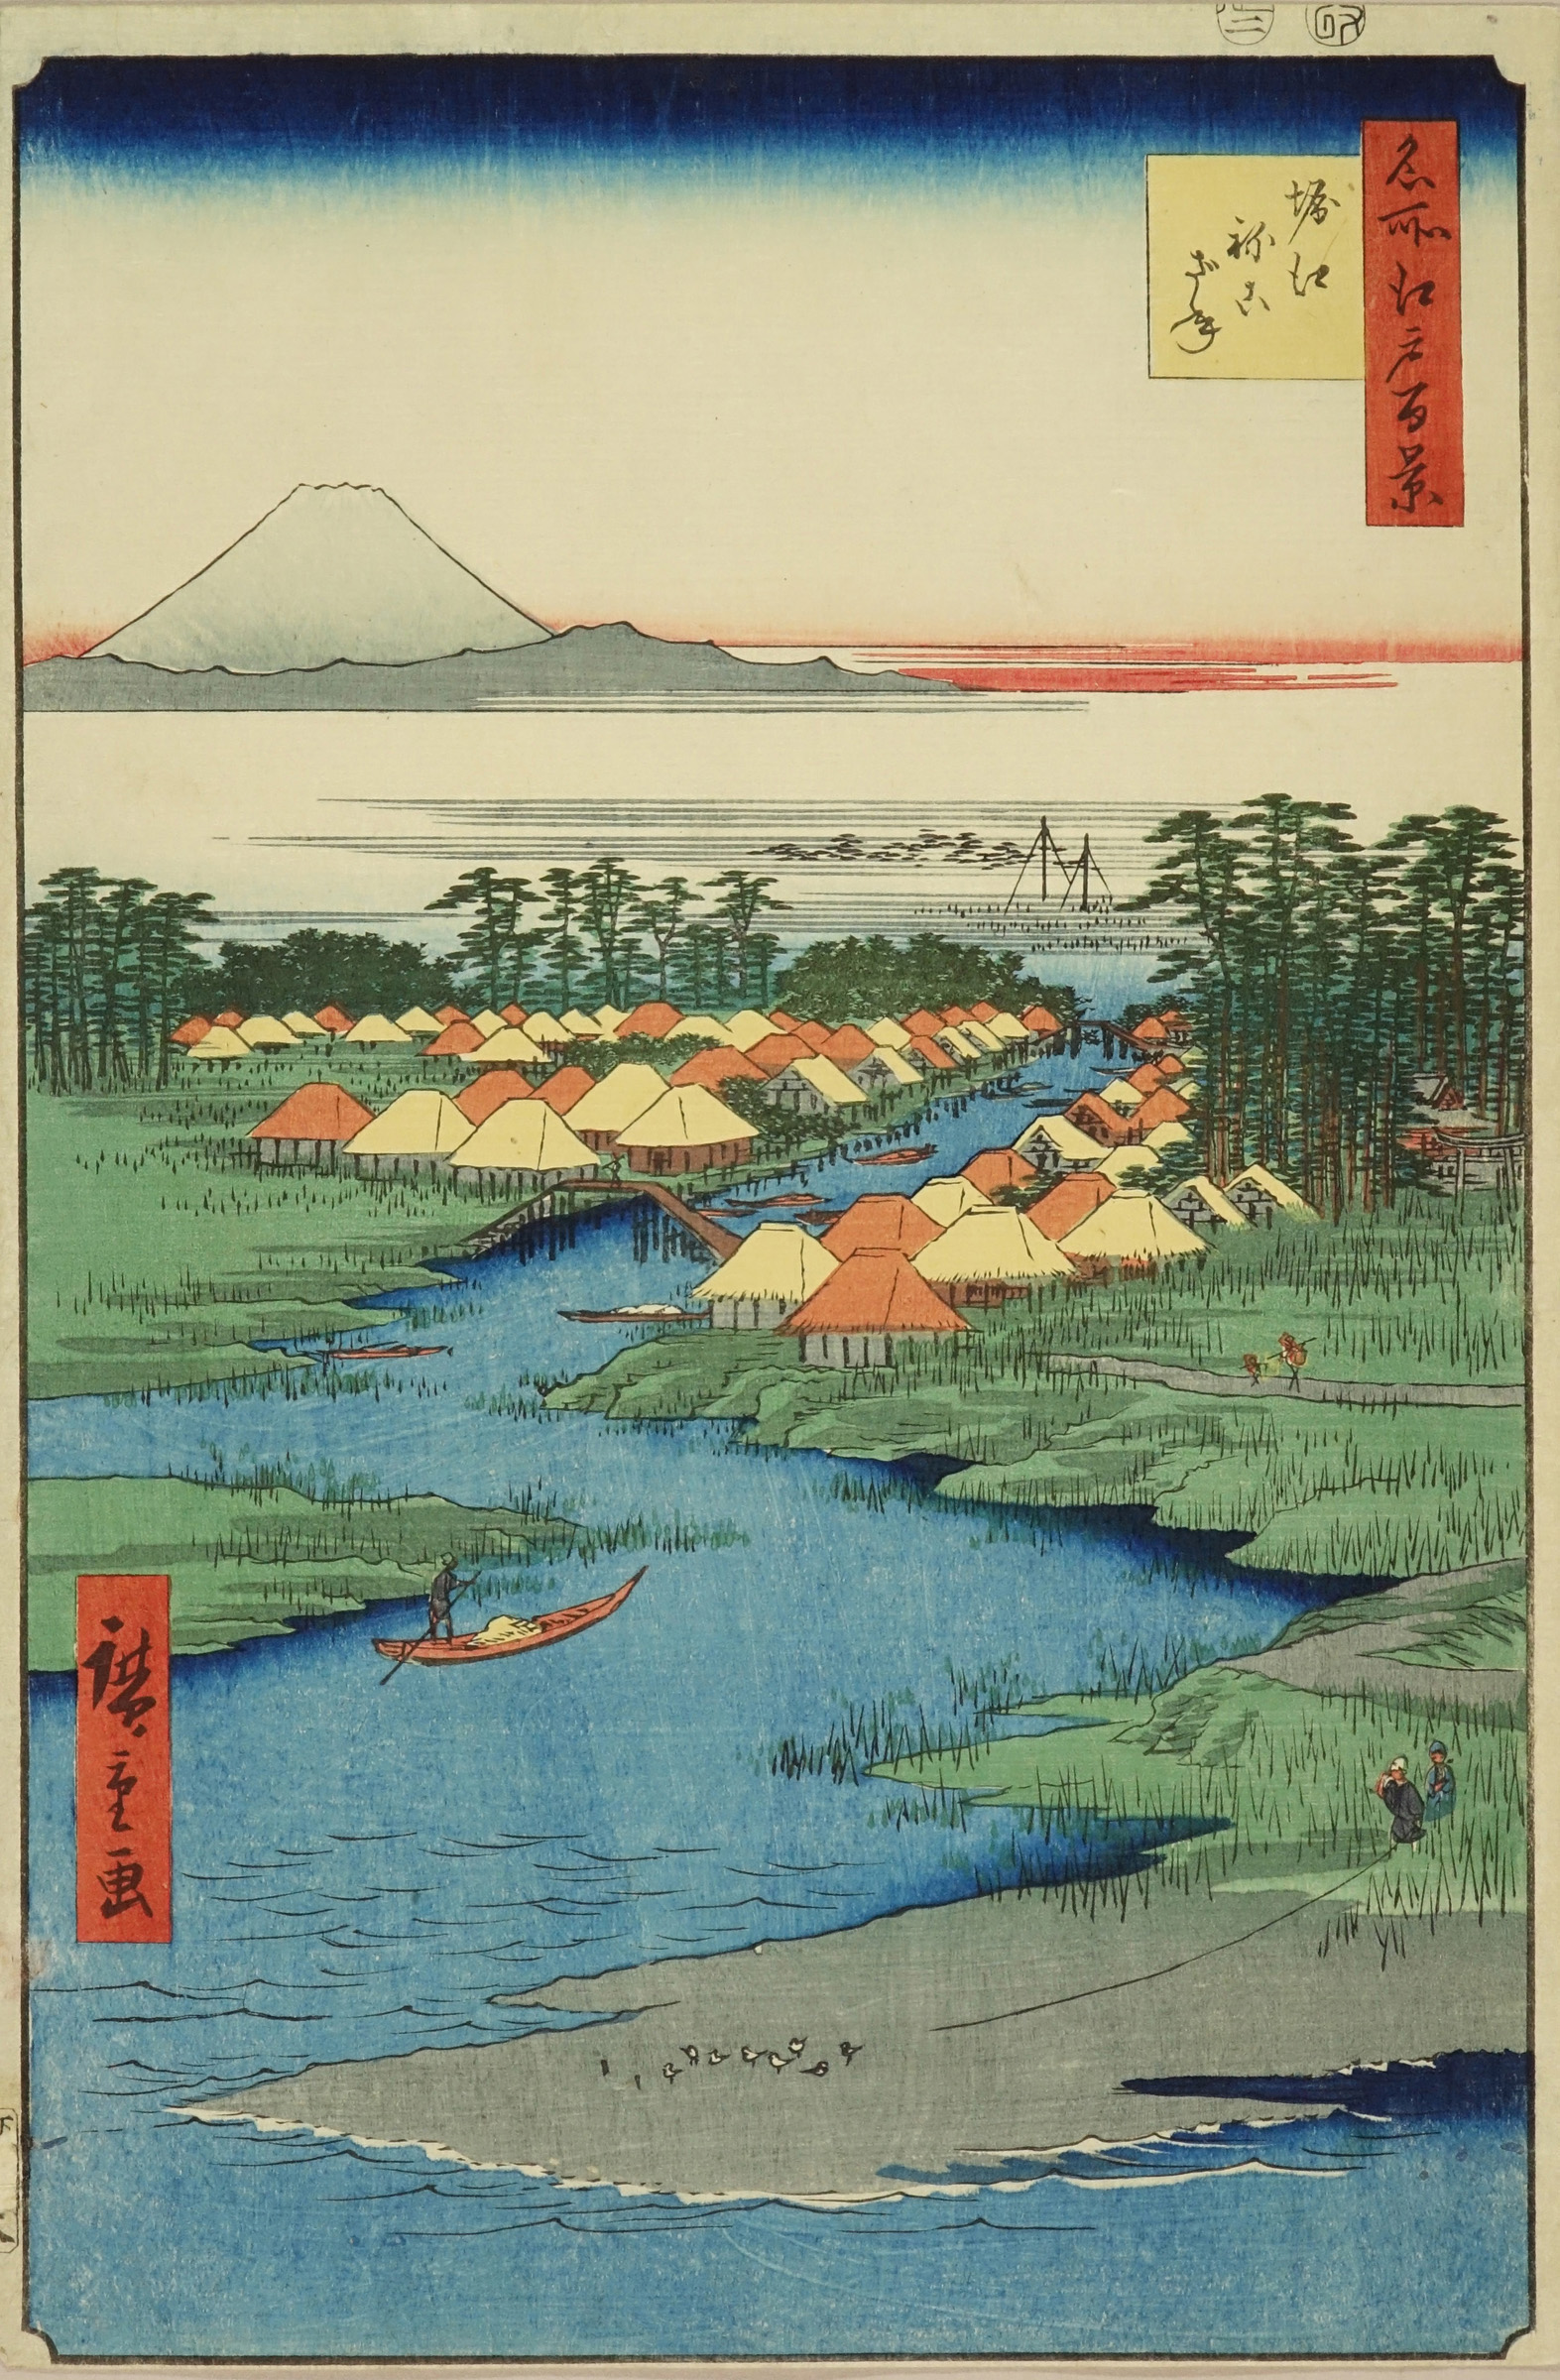 HIROSHIGE Nekozane, Horie, from <i>Meisho Edo hyakkei</i> (One hundred views of famous places of Edo)